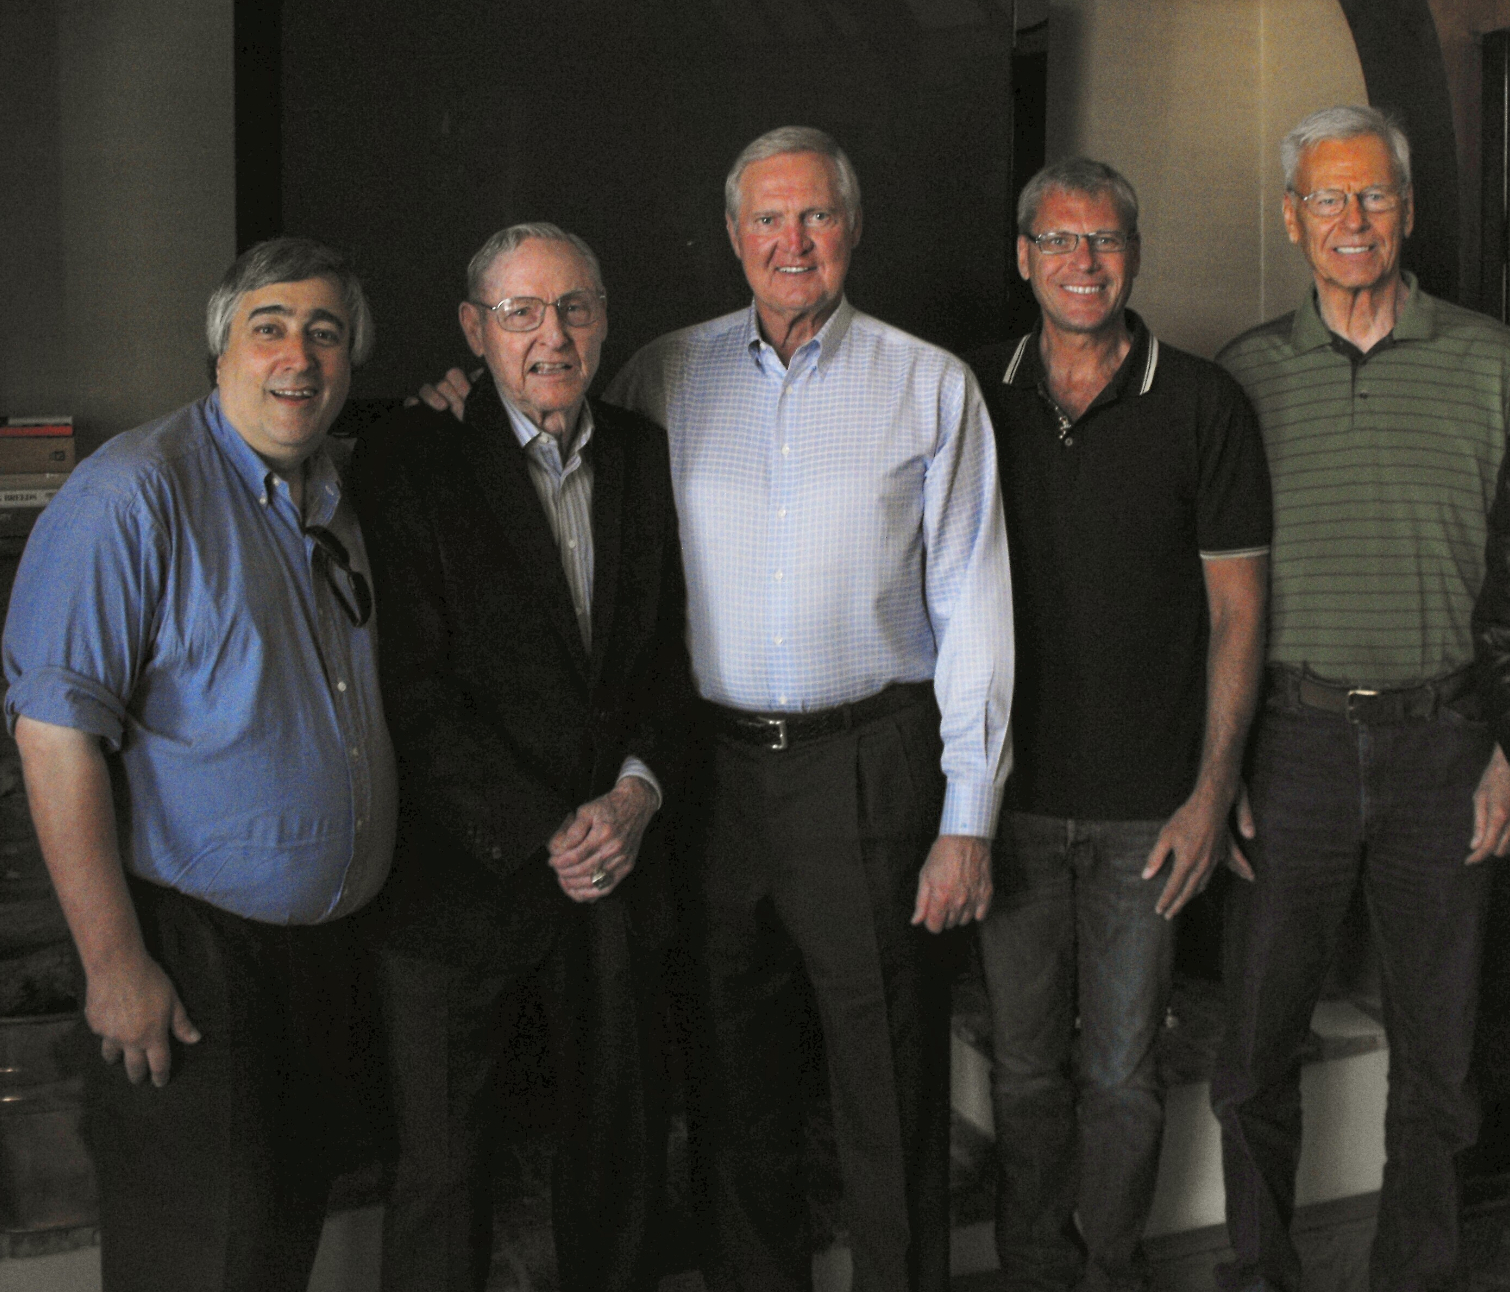 Elliott, Jerry West, Bill Sharman & crew